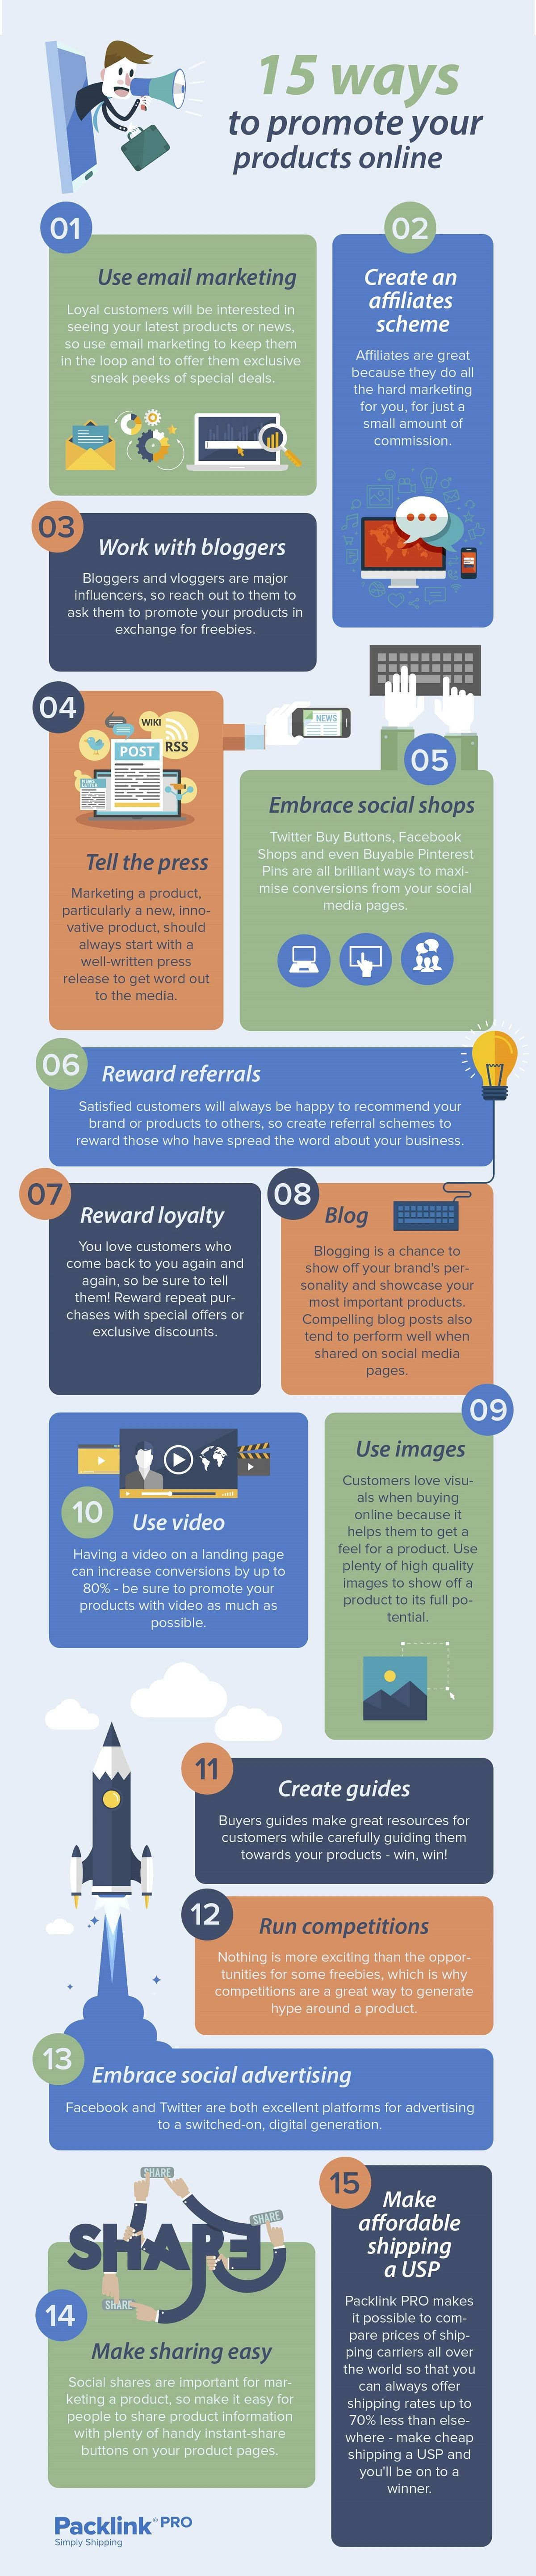 15 Ways To Promote Your Products Online #Infographic